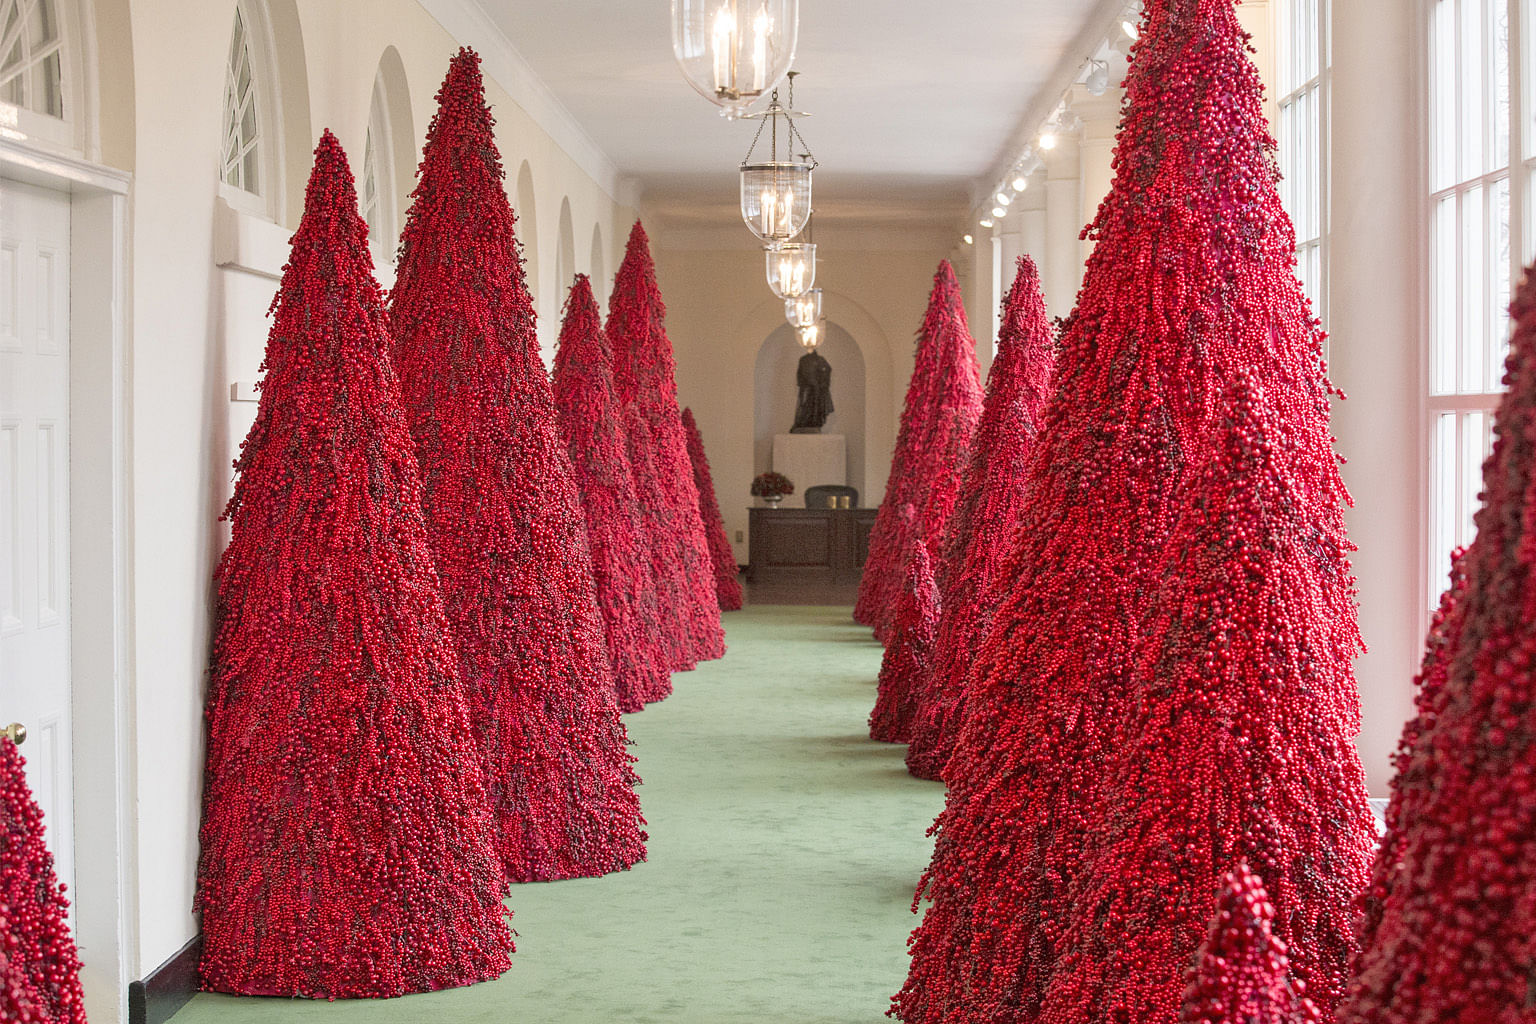 Melania Trump S Fantastic Blood Red Christmas Trees Too Provocative For Some United States News Top Stories The Straits Times